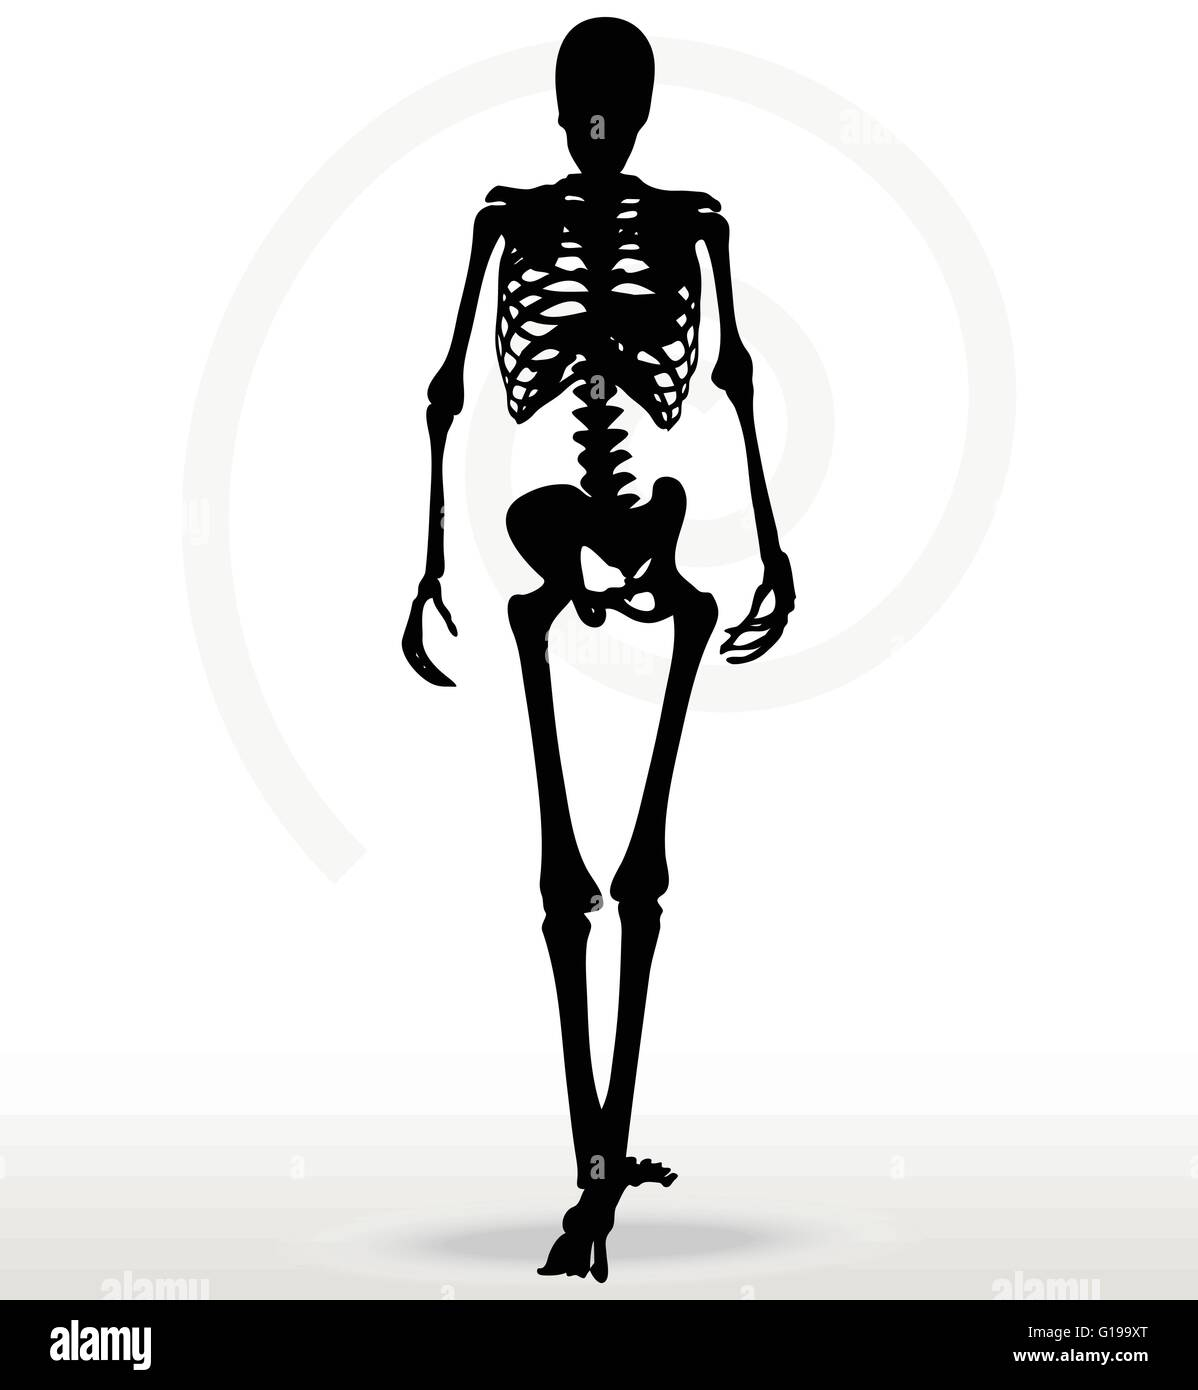 Vector Image - skeleton silhouette in walk pose isolated on white background Stock Vector